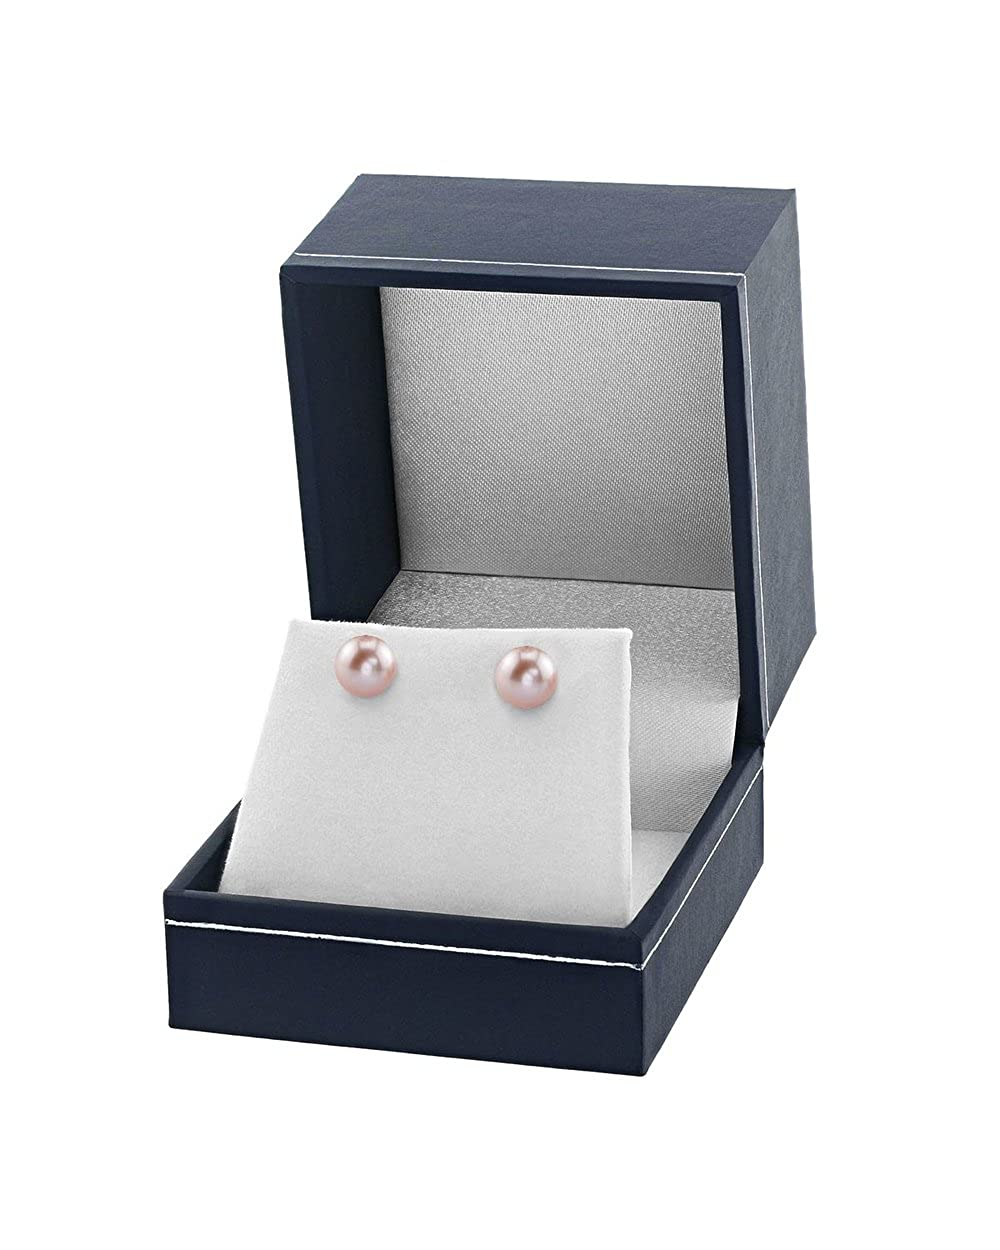 THE PEARL SOURCE 14K Gold AAAA Quality Round Pink Freshwater Cultured Pearl Stud Earrings for Women lvstuds-7-WG-AO:8